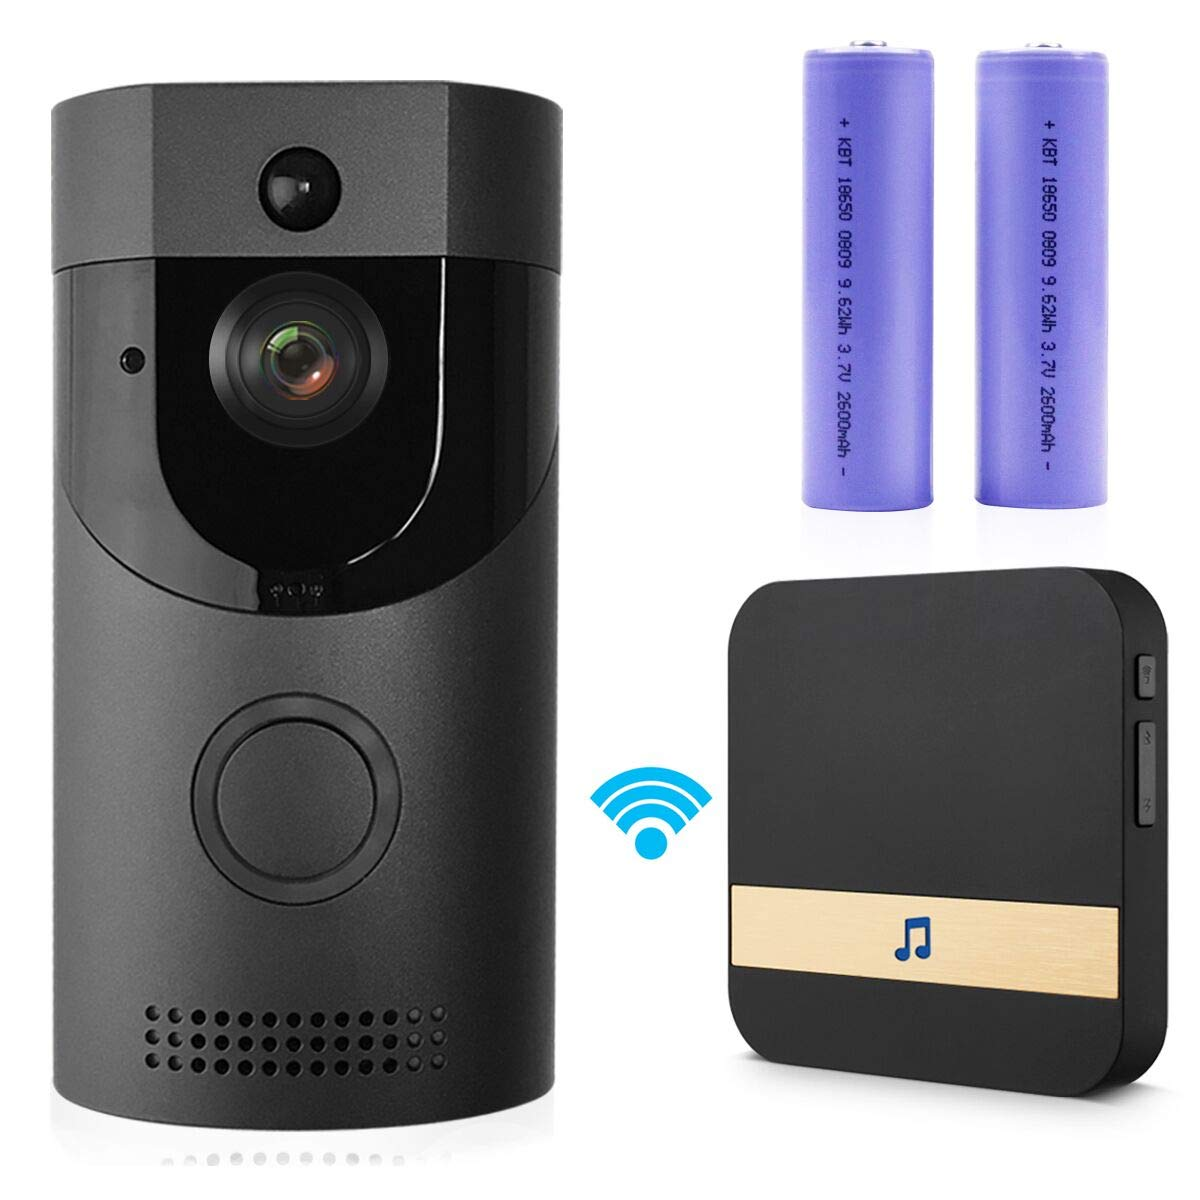 Smart Doorbell, Waterproof WiFi Video Doorbell HD 720P Security Camera with Indoor Chime, Night Vision, PIR Motion Detection Real-Time Two-Way Talk and Video, App Control Support iOS and Android